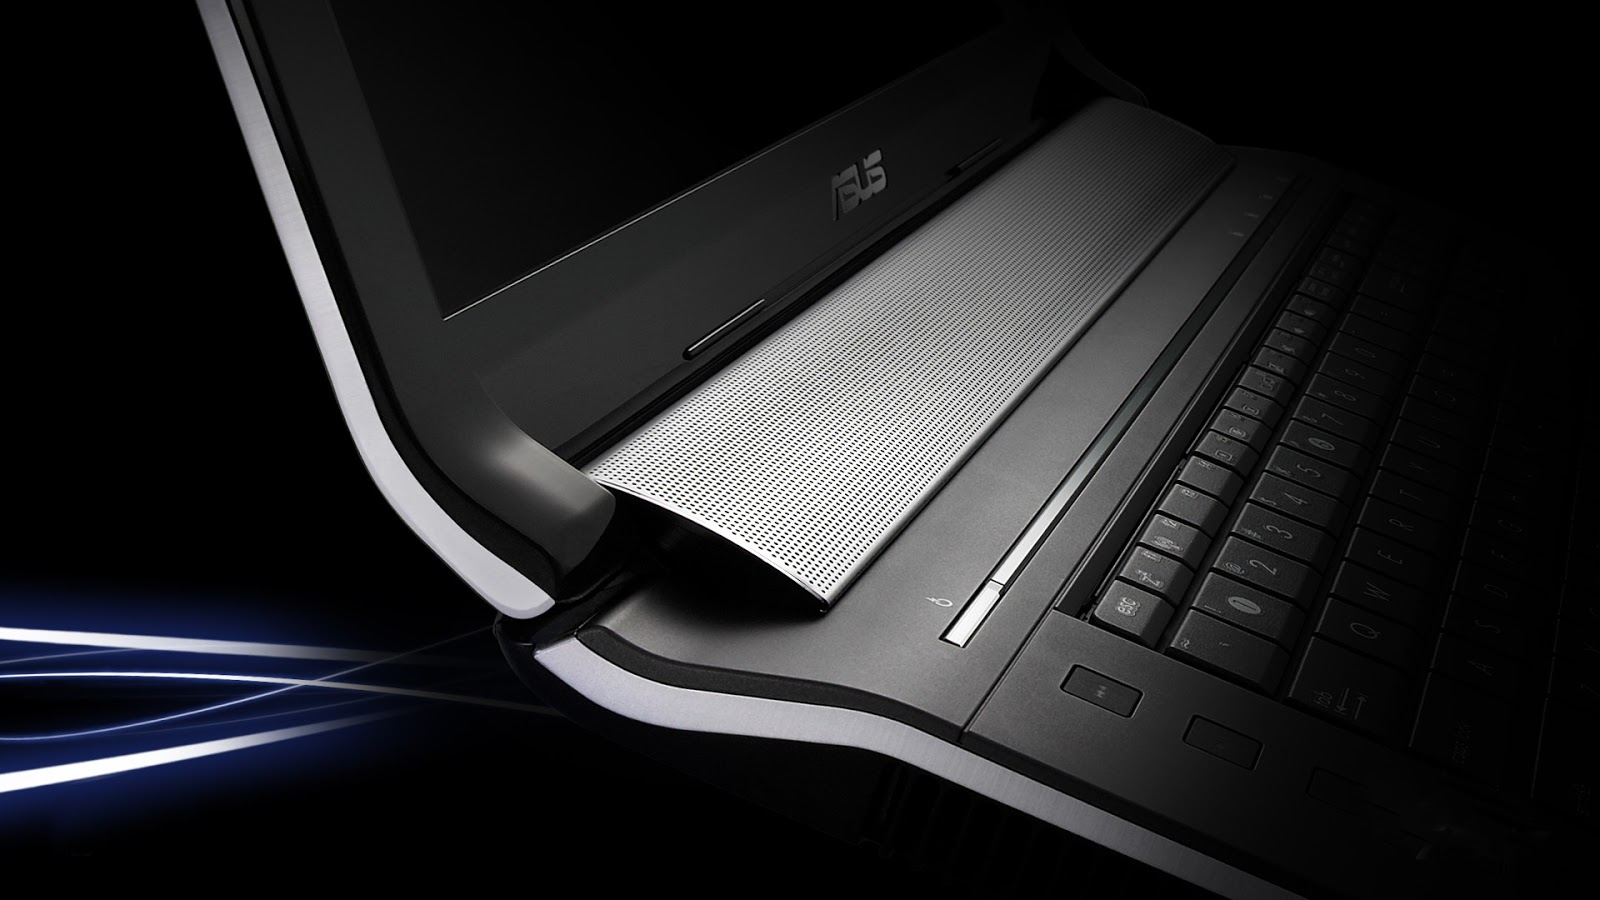 hd laptop 3d wallpapers - stylish cover